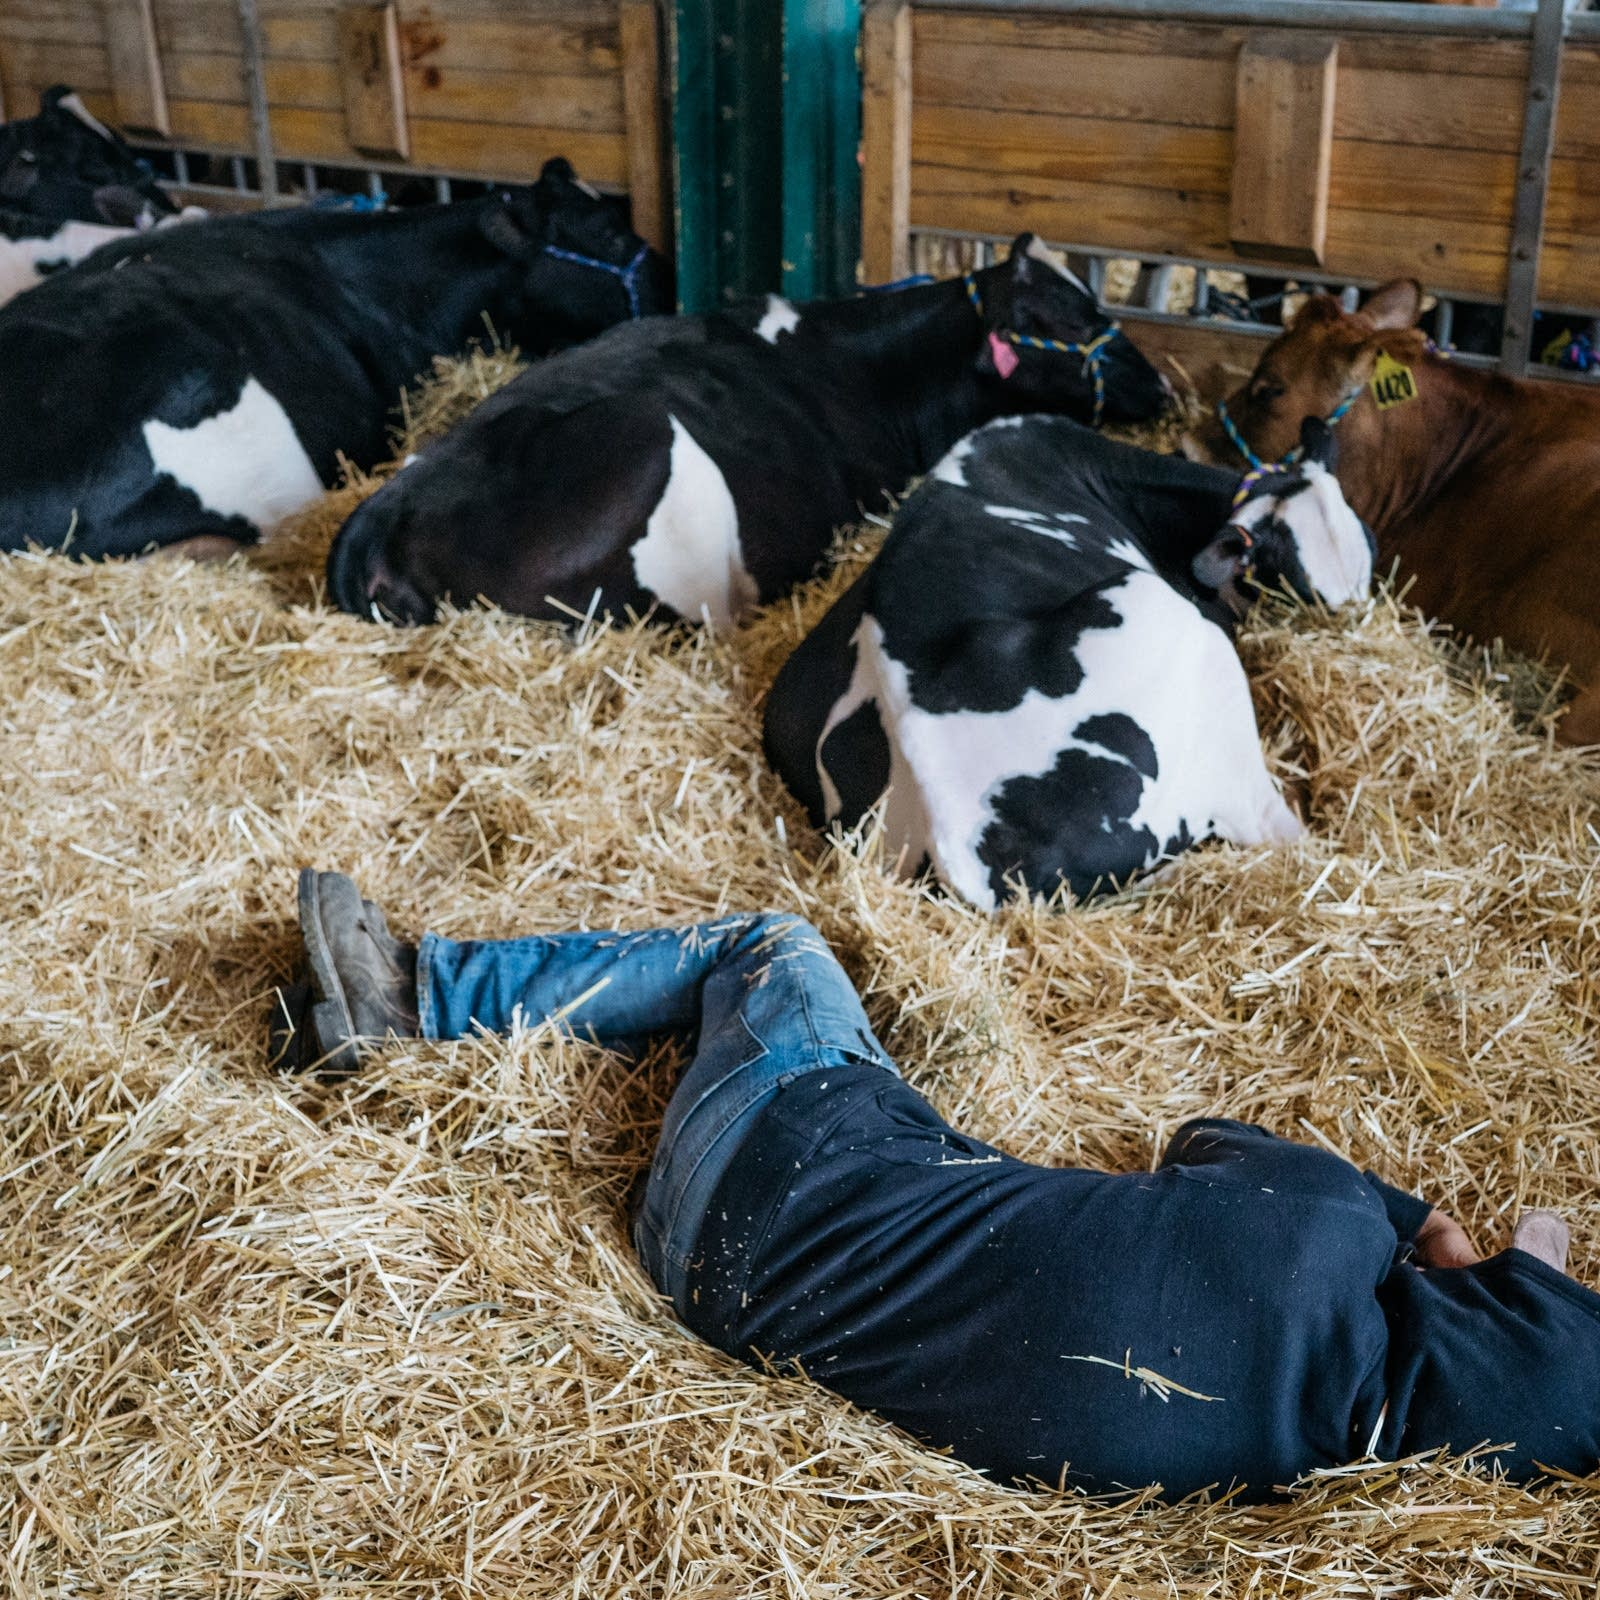 A person sleeps in the hay with cows inside the cow barn.